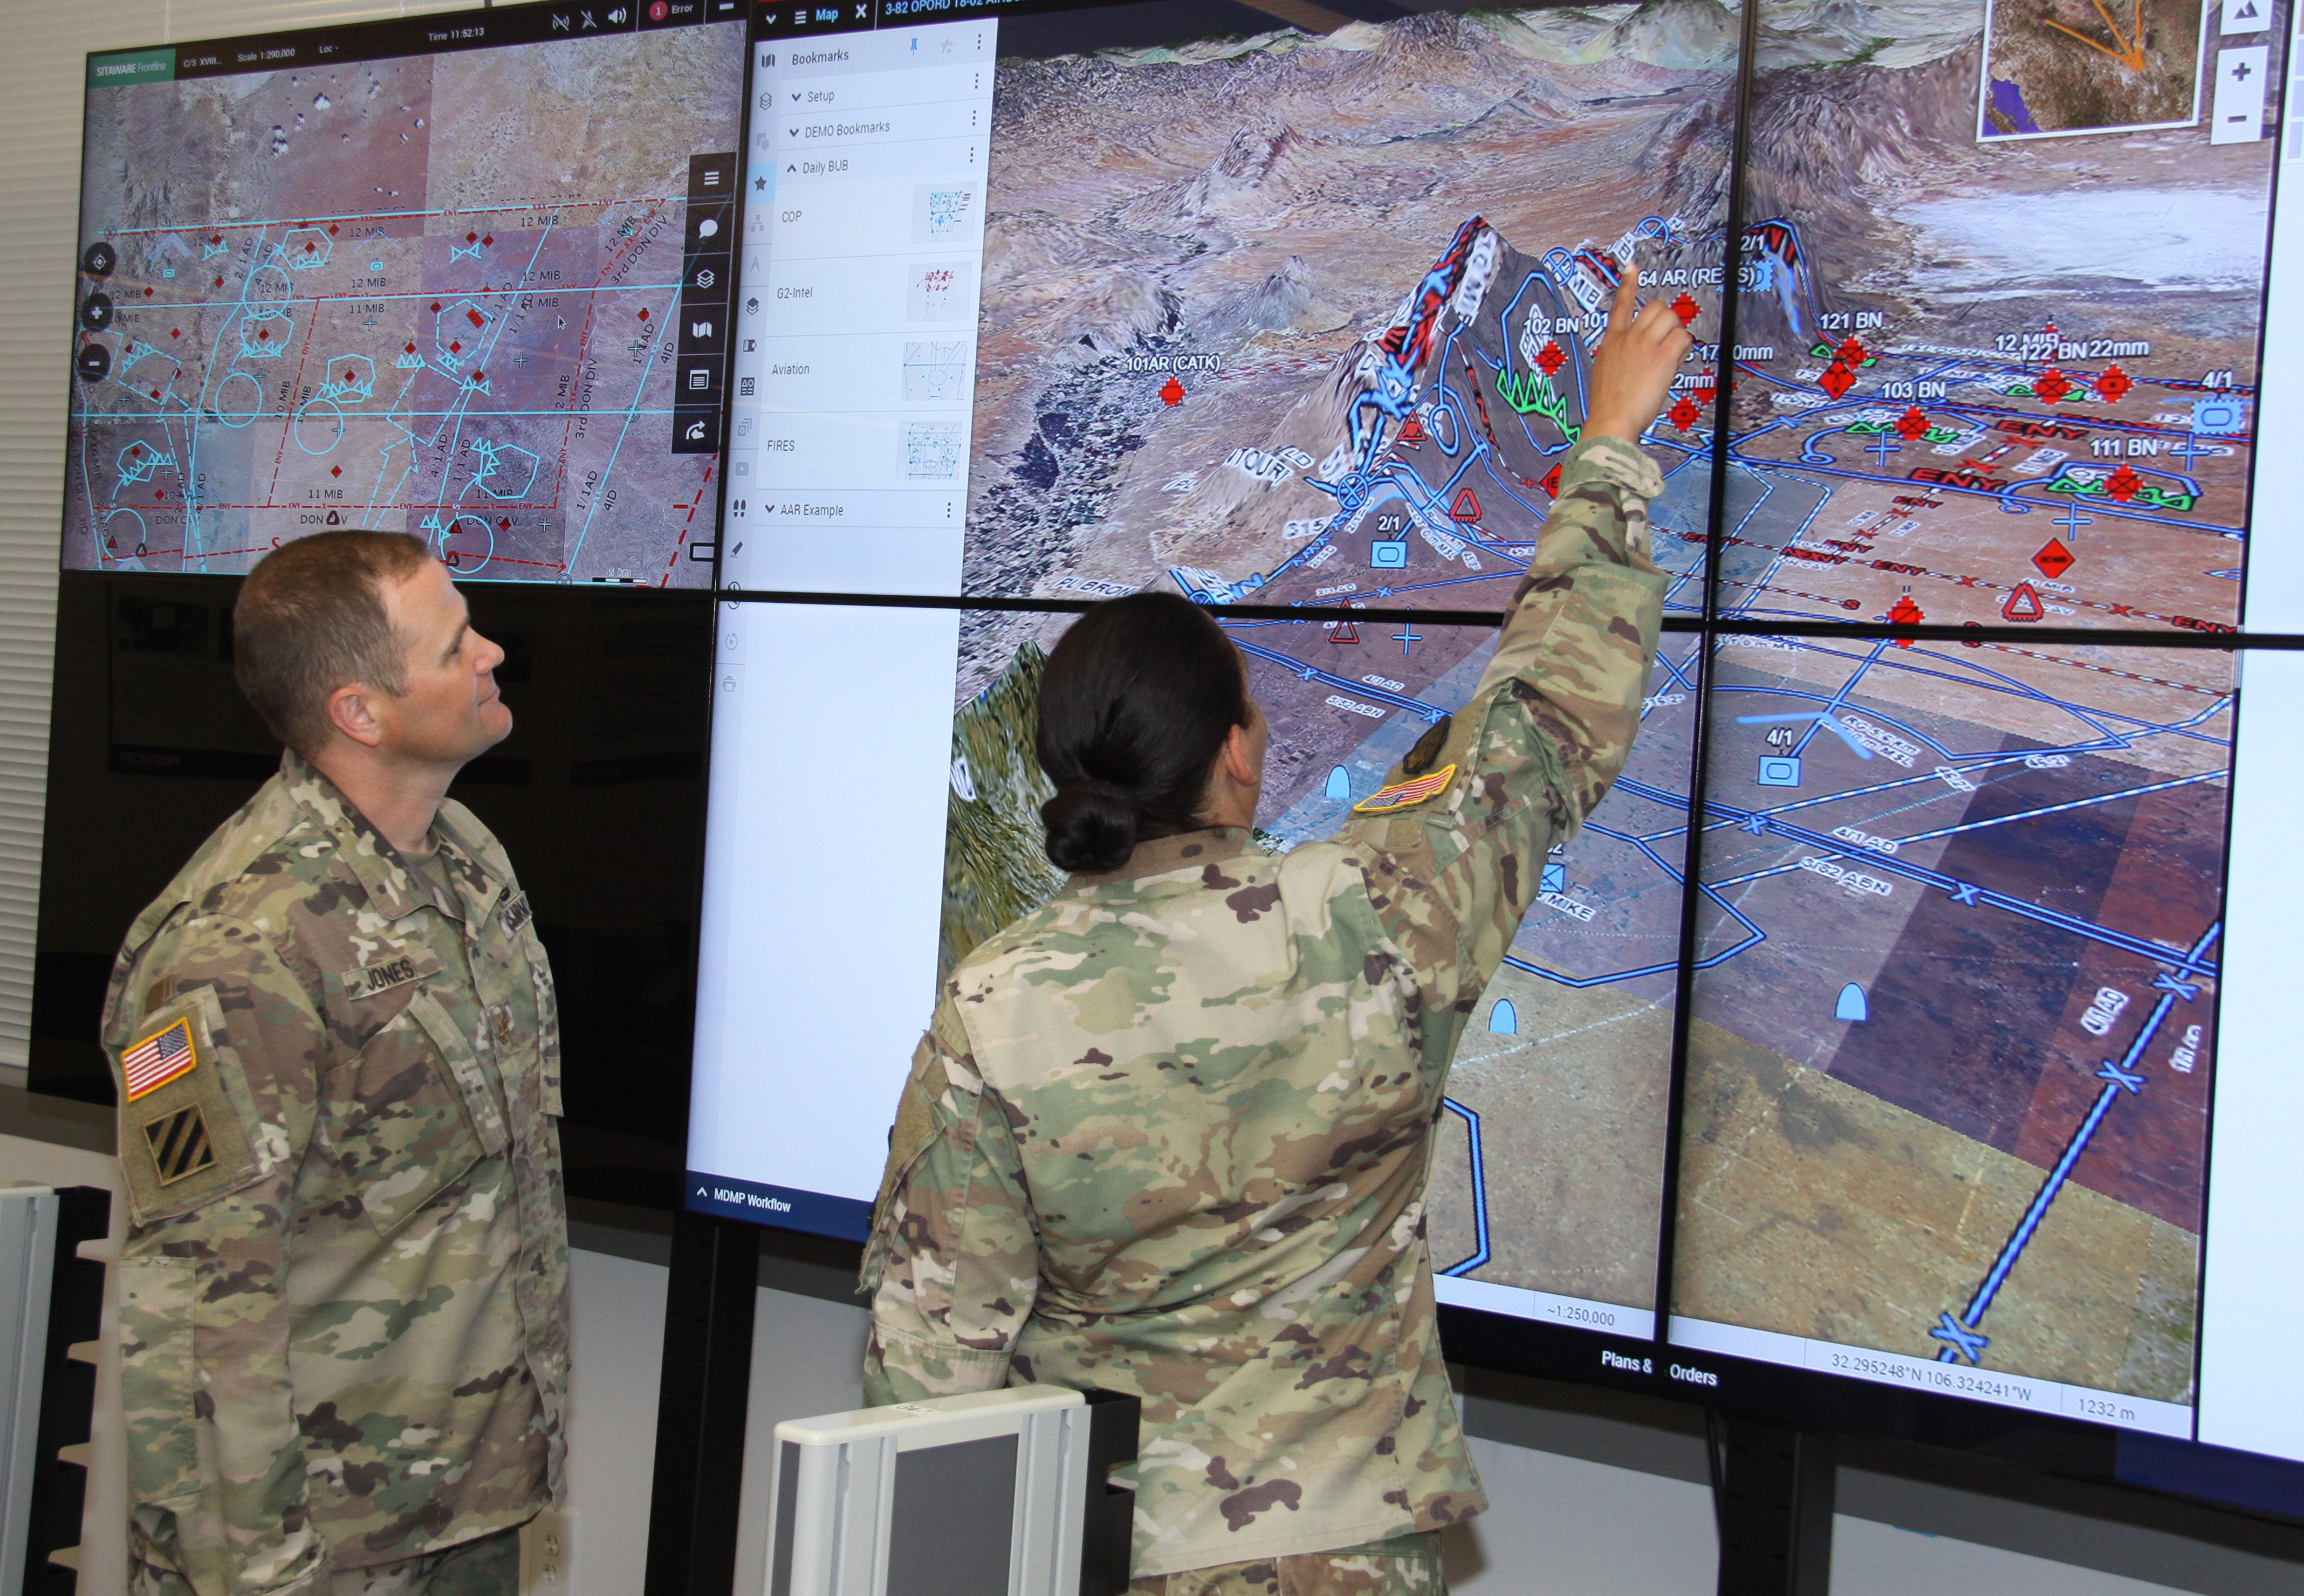 Maj. Jerry Jones and Capt. Monica Holmes demonstrate the Command Post Computing Environment at Aberdeen Proving Ground, Maryland, June 5, 2018. CP CE will feature a simplified user experience by combining warfighting functions into a common user interface, reducing the training burden on Soldiers and accelerating the integration of new capabilities. Core CP CE common infrastructure functions will provide chat, a standardized map, message centers and an extensible data model. (Courtesy of U.S. Army)